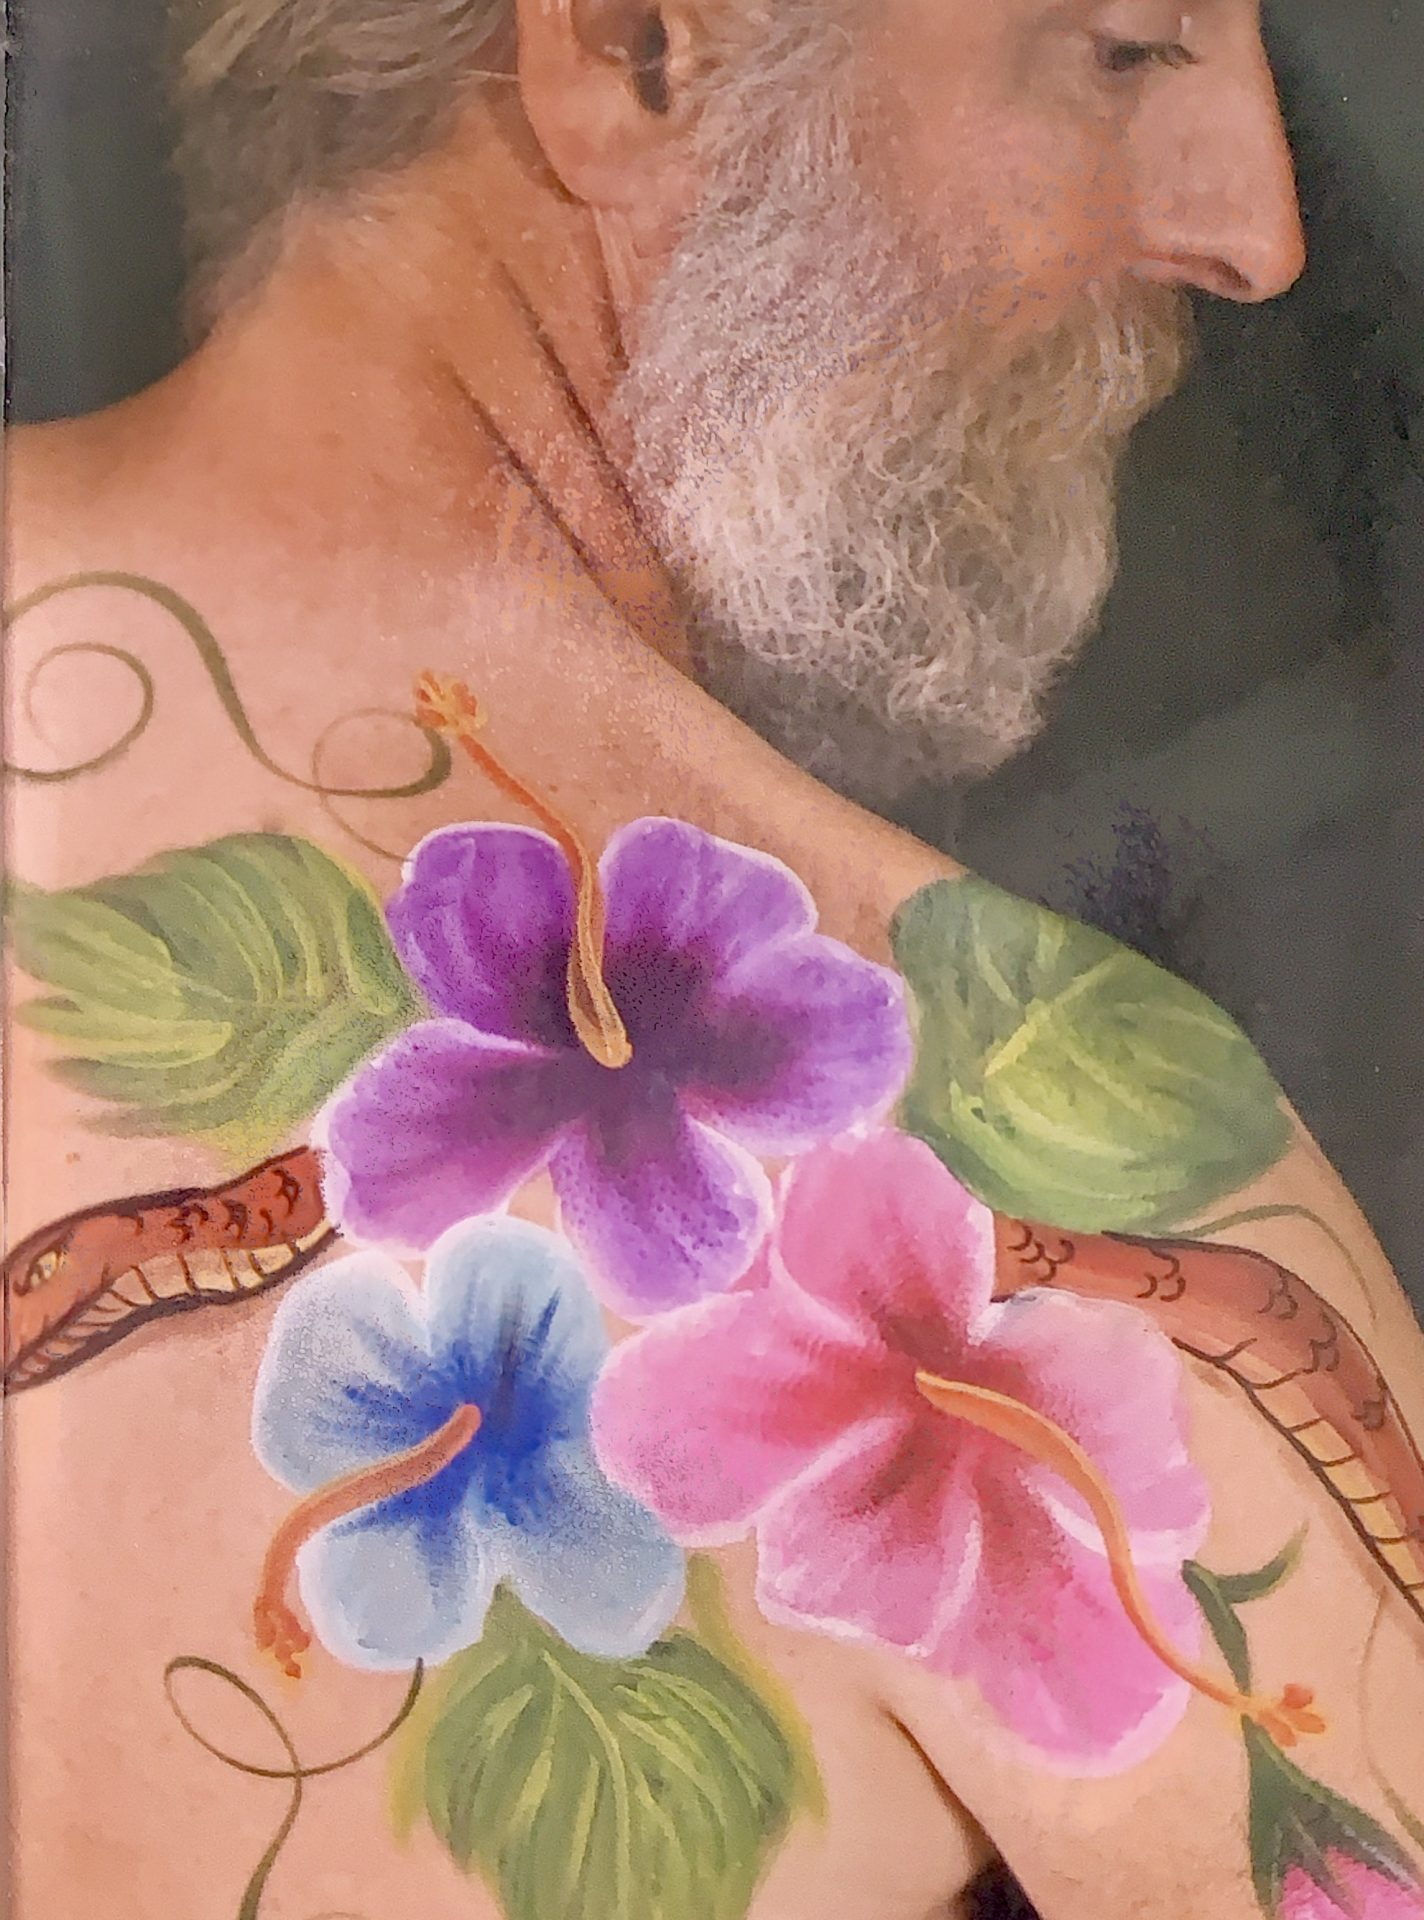 One of Dave's favorite pictures of himself. Art by professional body painter Susan McNeely